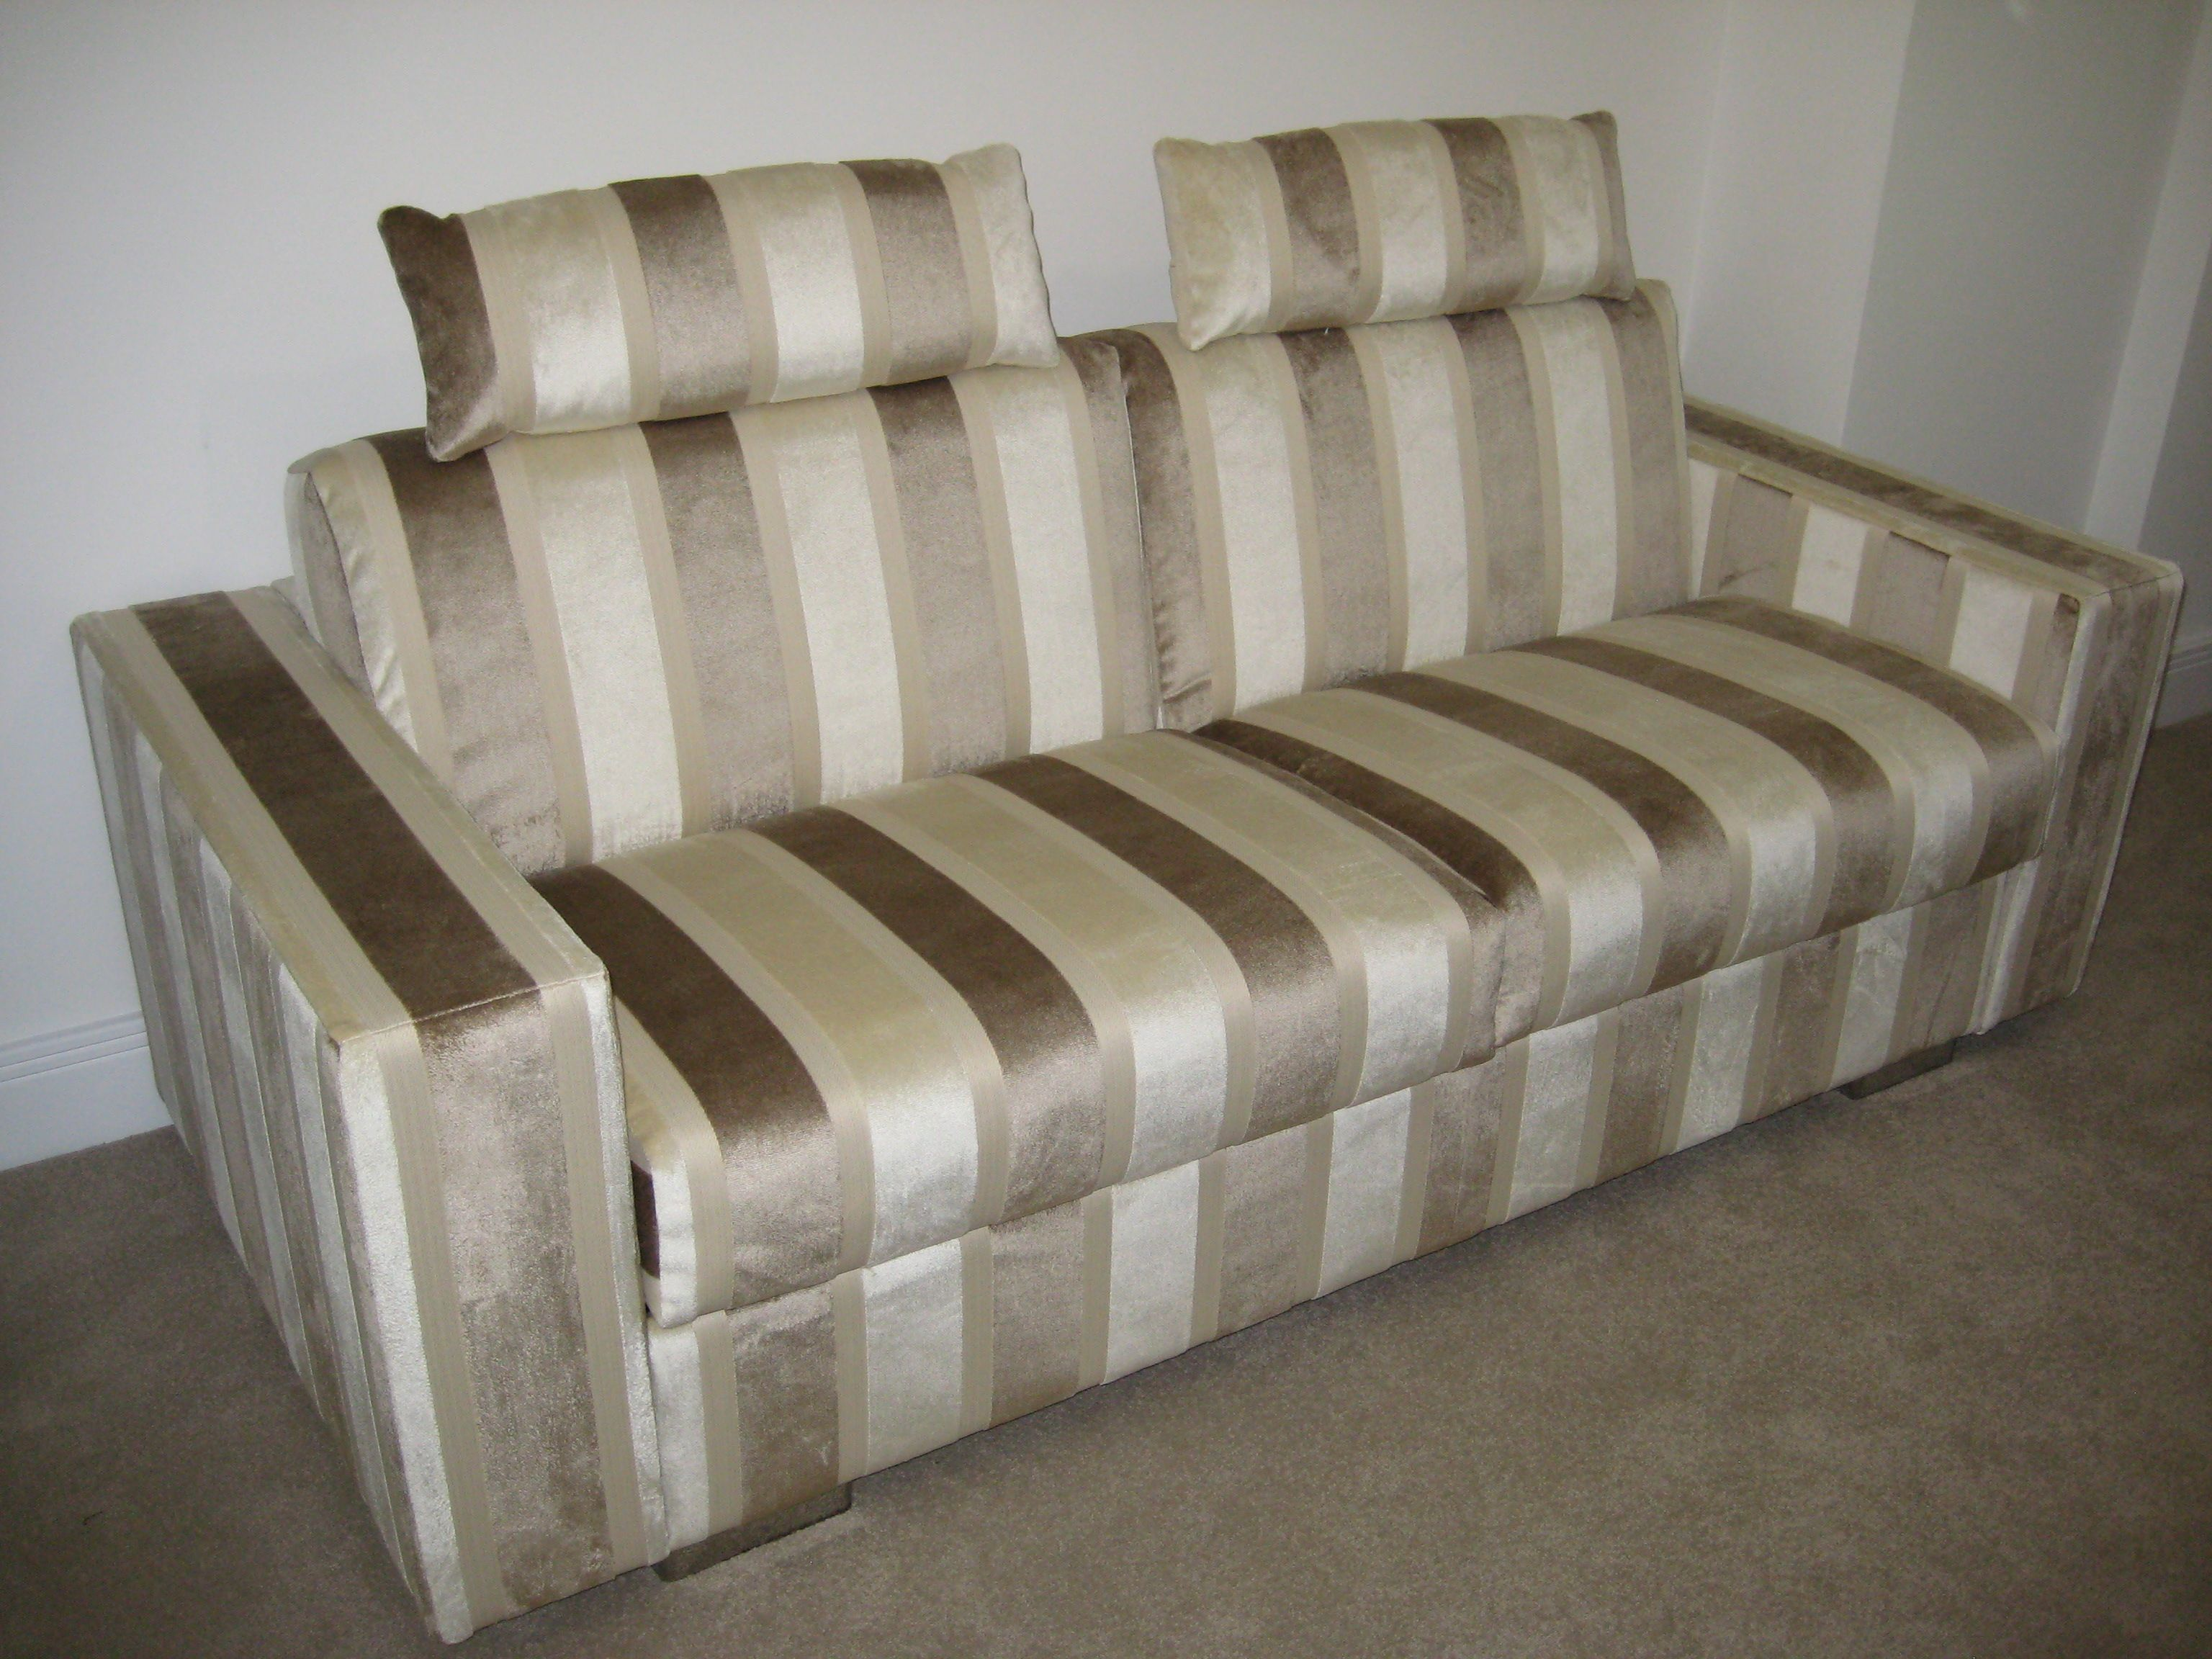 Best Lario Luxury All The Time Sleep Option Sofa Bed With 640 x 480